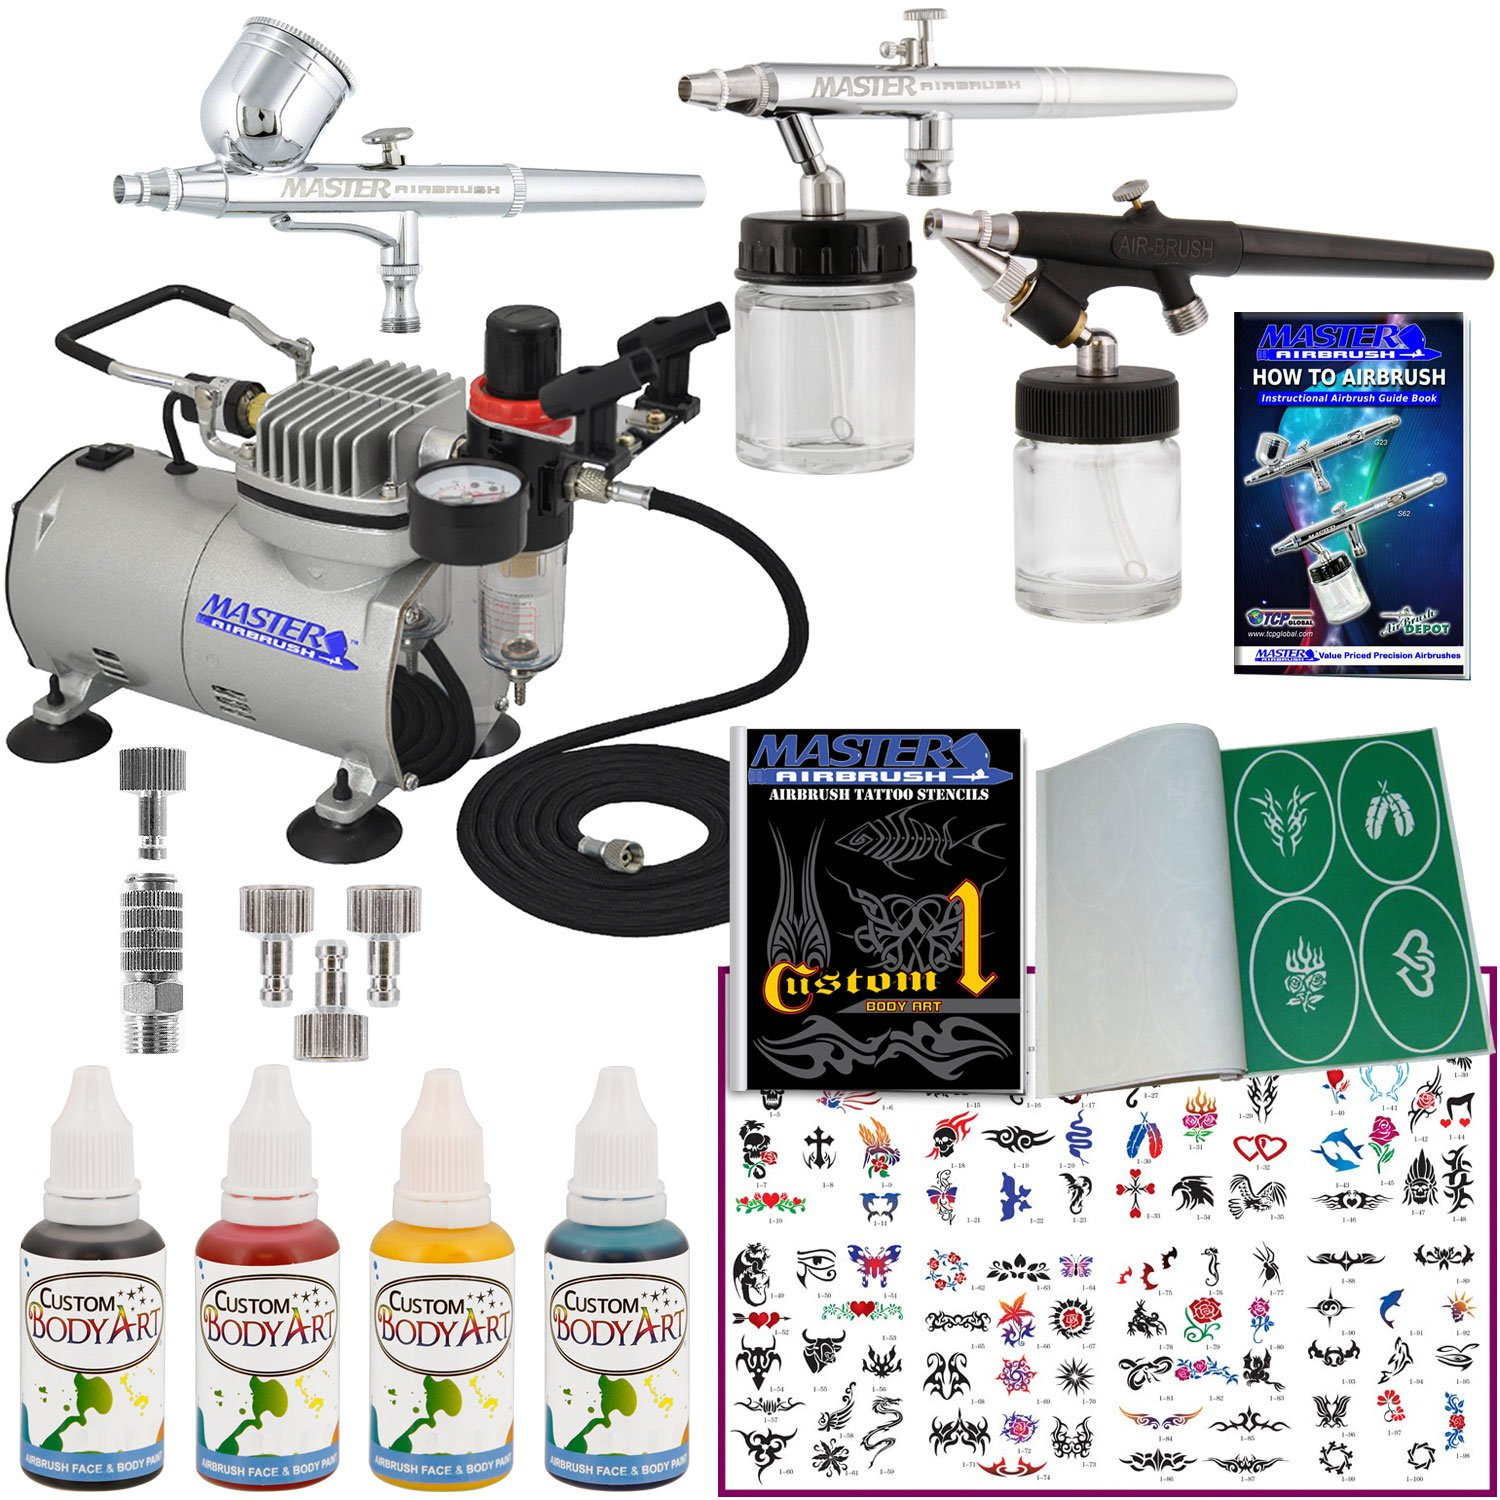 Master Airbrush Water Based Tattoo System. 3 Airbrushes, Air Compressor, Deluxe Book of 100 Stencils, 6' Hose, Airbrush Holder, 3 Quick Couplers, Black, Red & Blue Water Based Temporary Tattoo Ink in 1-oz Bottles. Now Includes a (FREE) How to Airbrush Tra by Master Airbrush (Image #1)